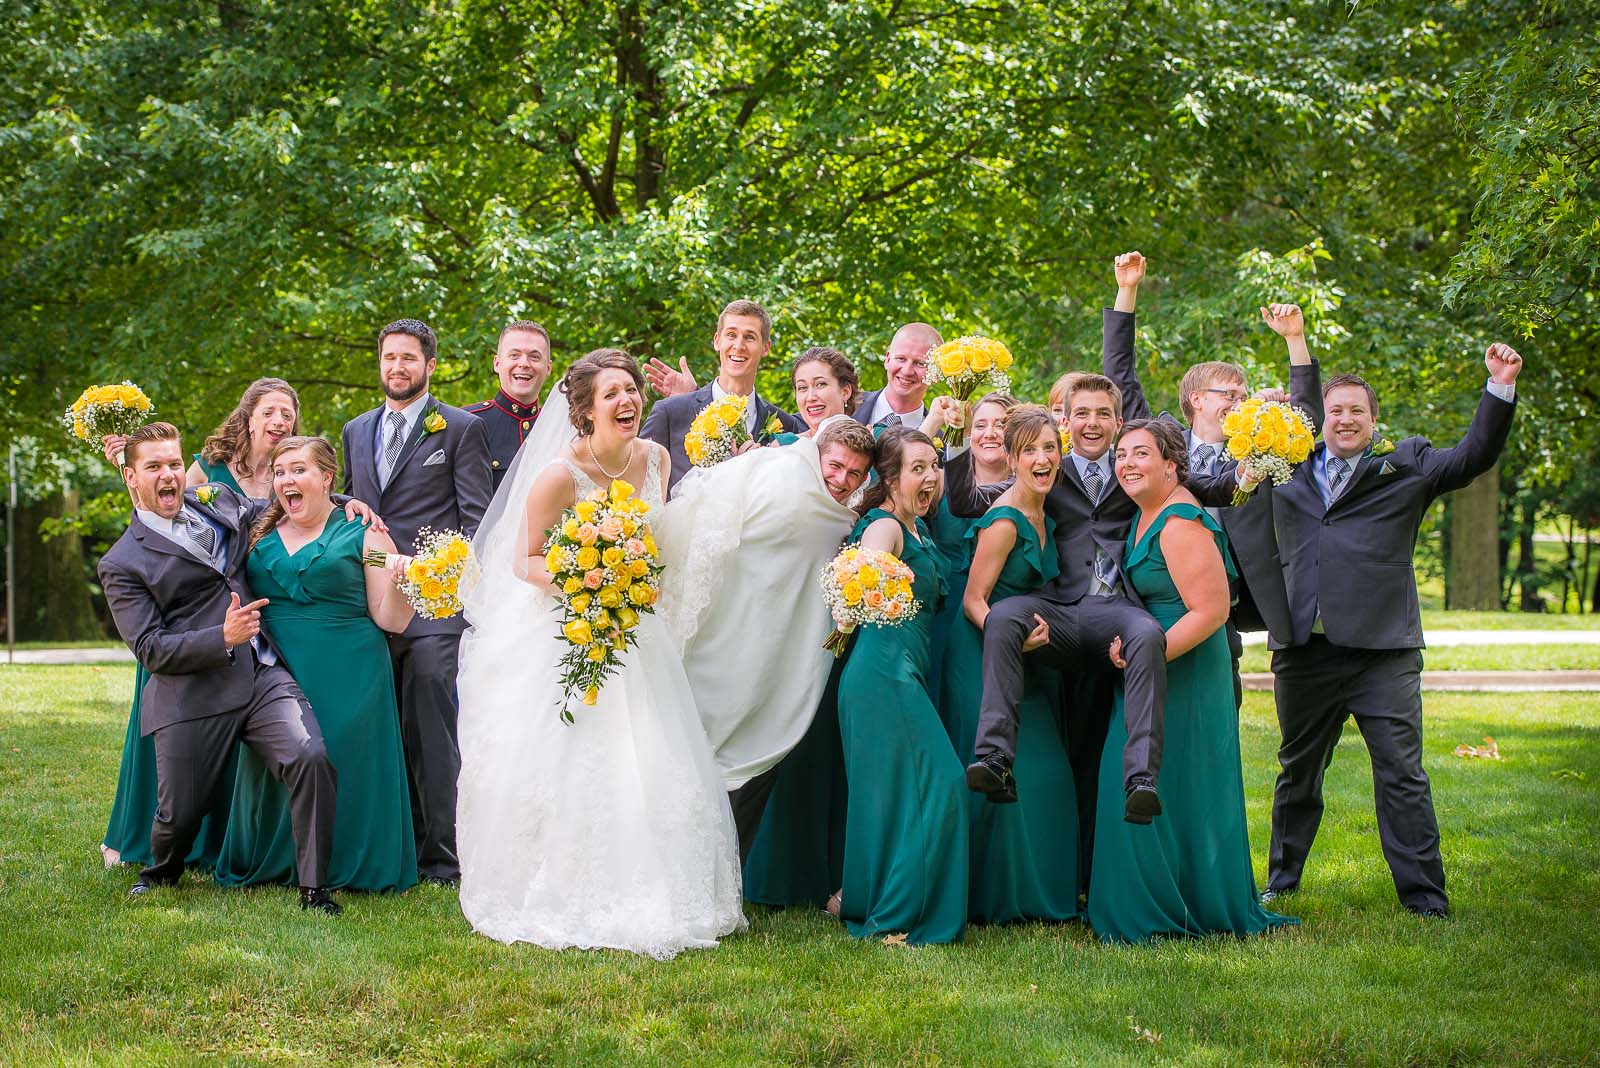 Eric_and_Christy_Photography_Blog_Wedding_Kelly_Michael-19